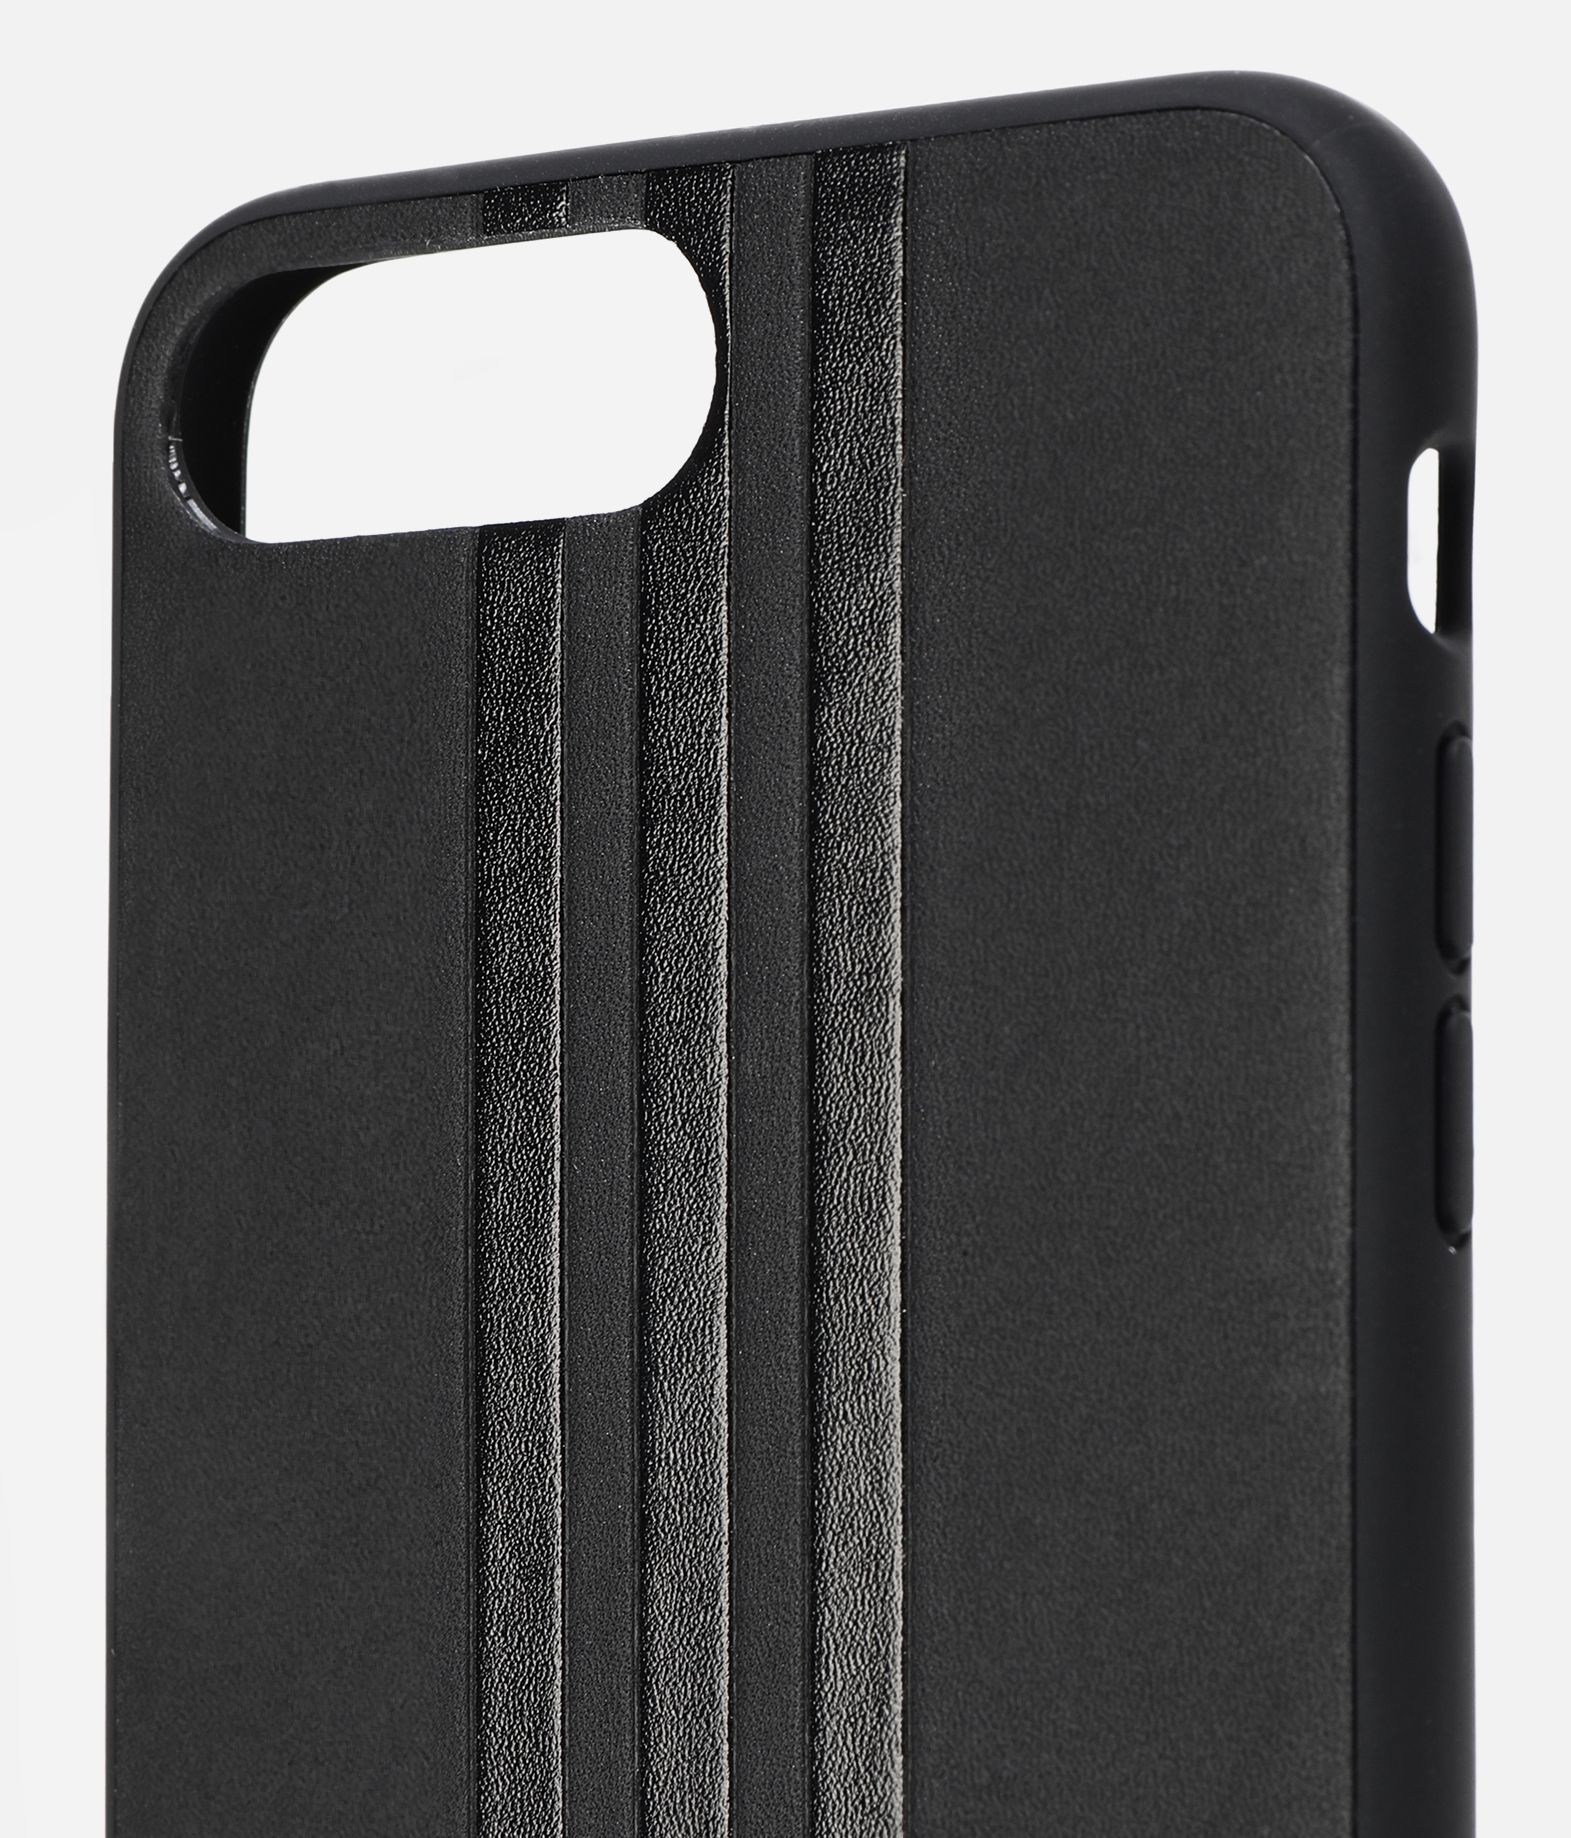 Y-3 Y-3 Moulded Case Leather iPhone 6+/6s+/7+/8+ Phone case E d